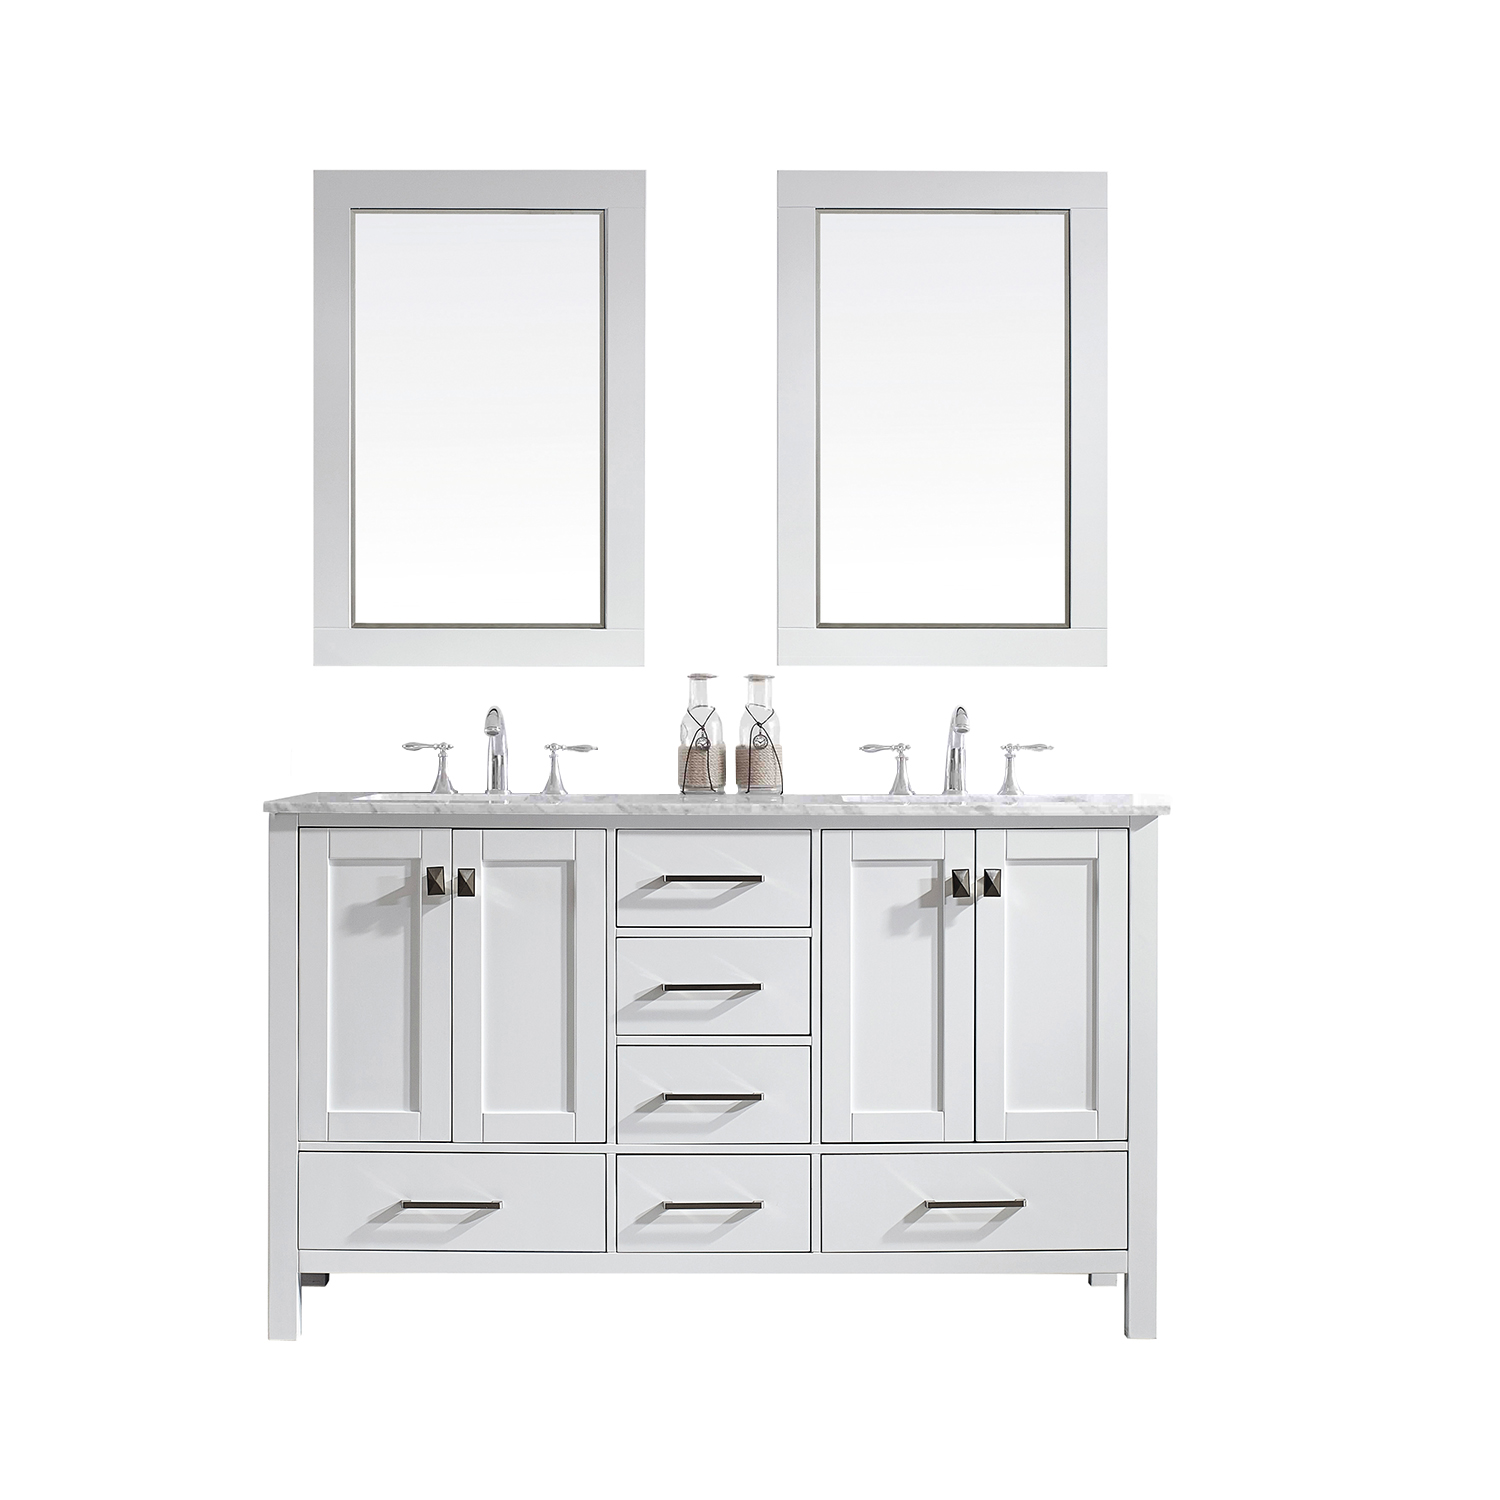 "EVVN412 60WH A Main - Eviva Aberdeen 60"" Transitional White Bathroom Vanity with White Carrera Countertop"